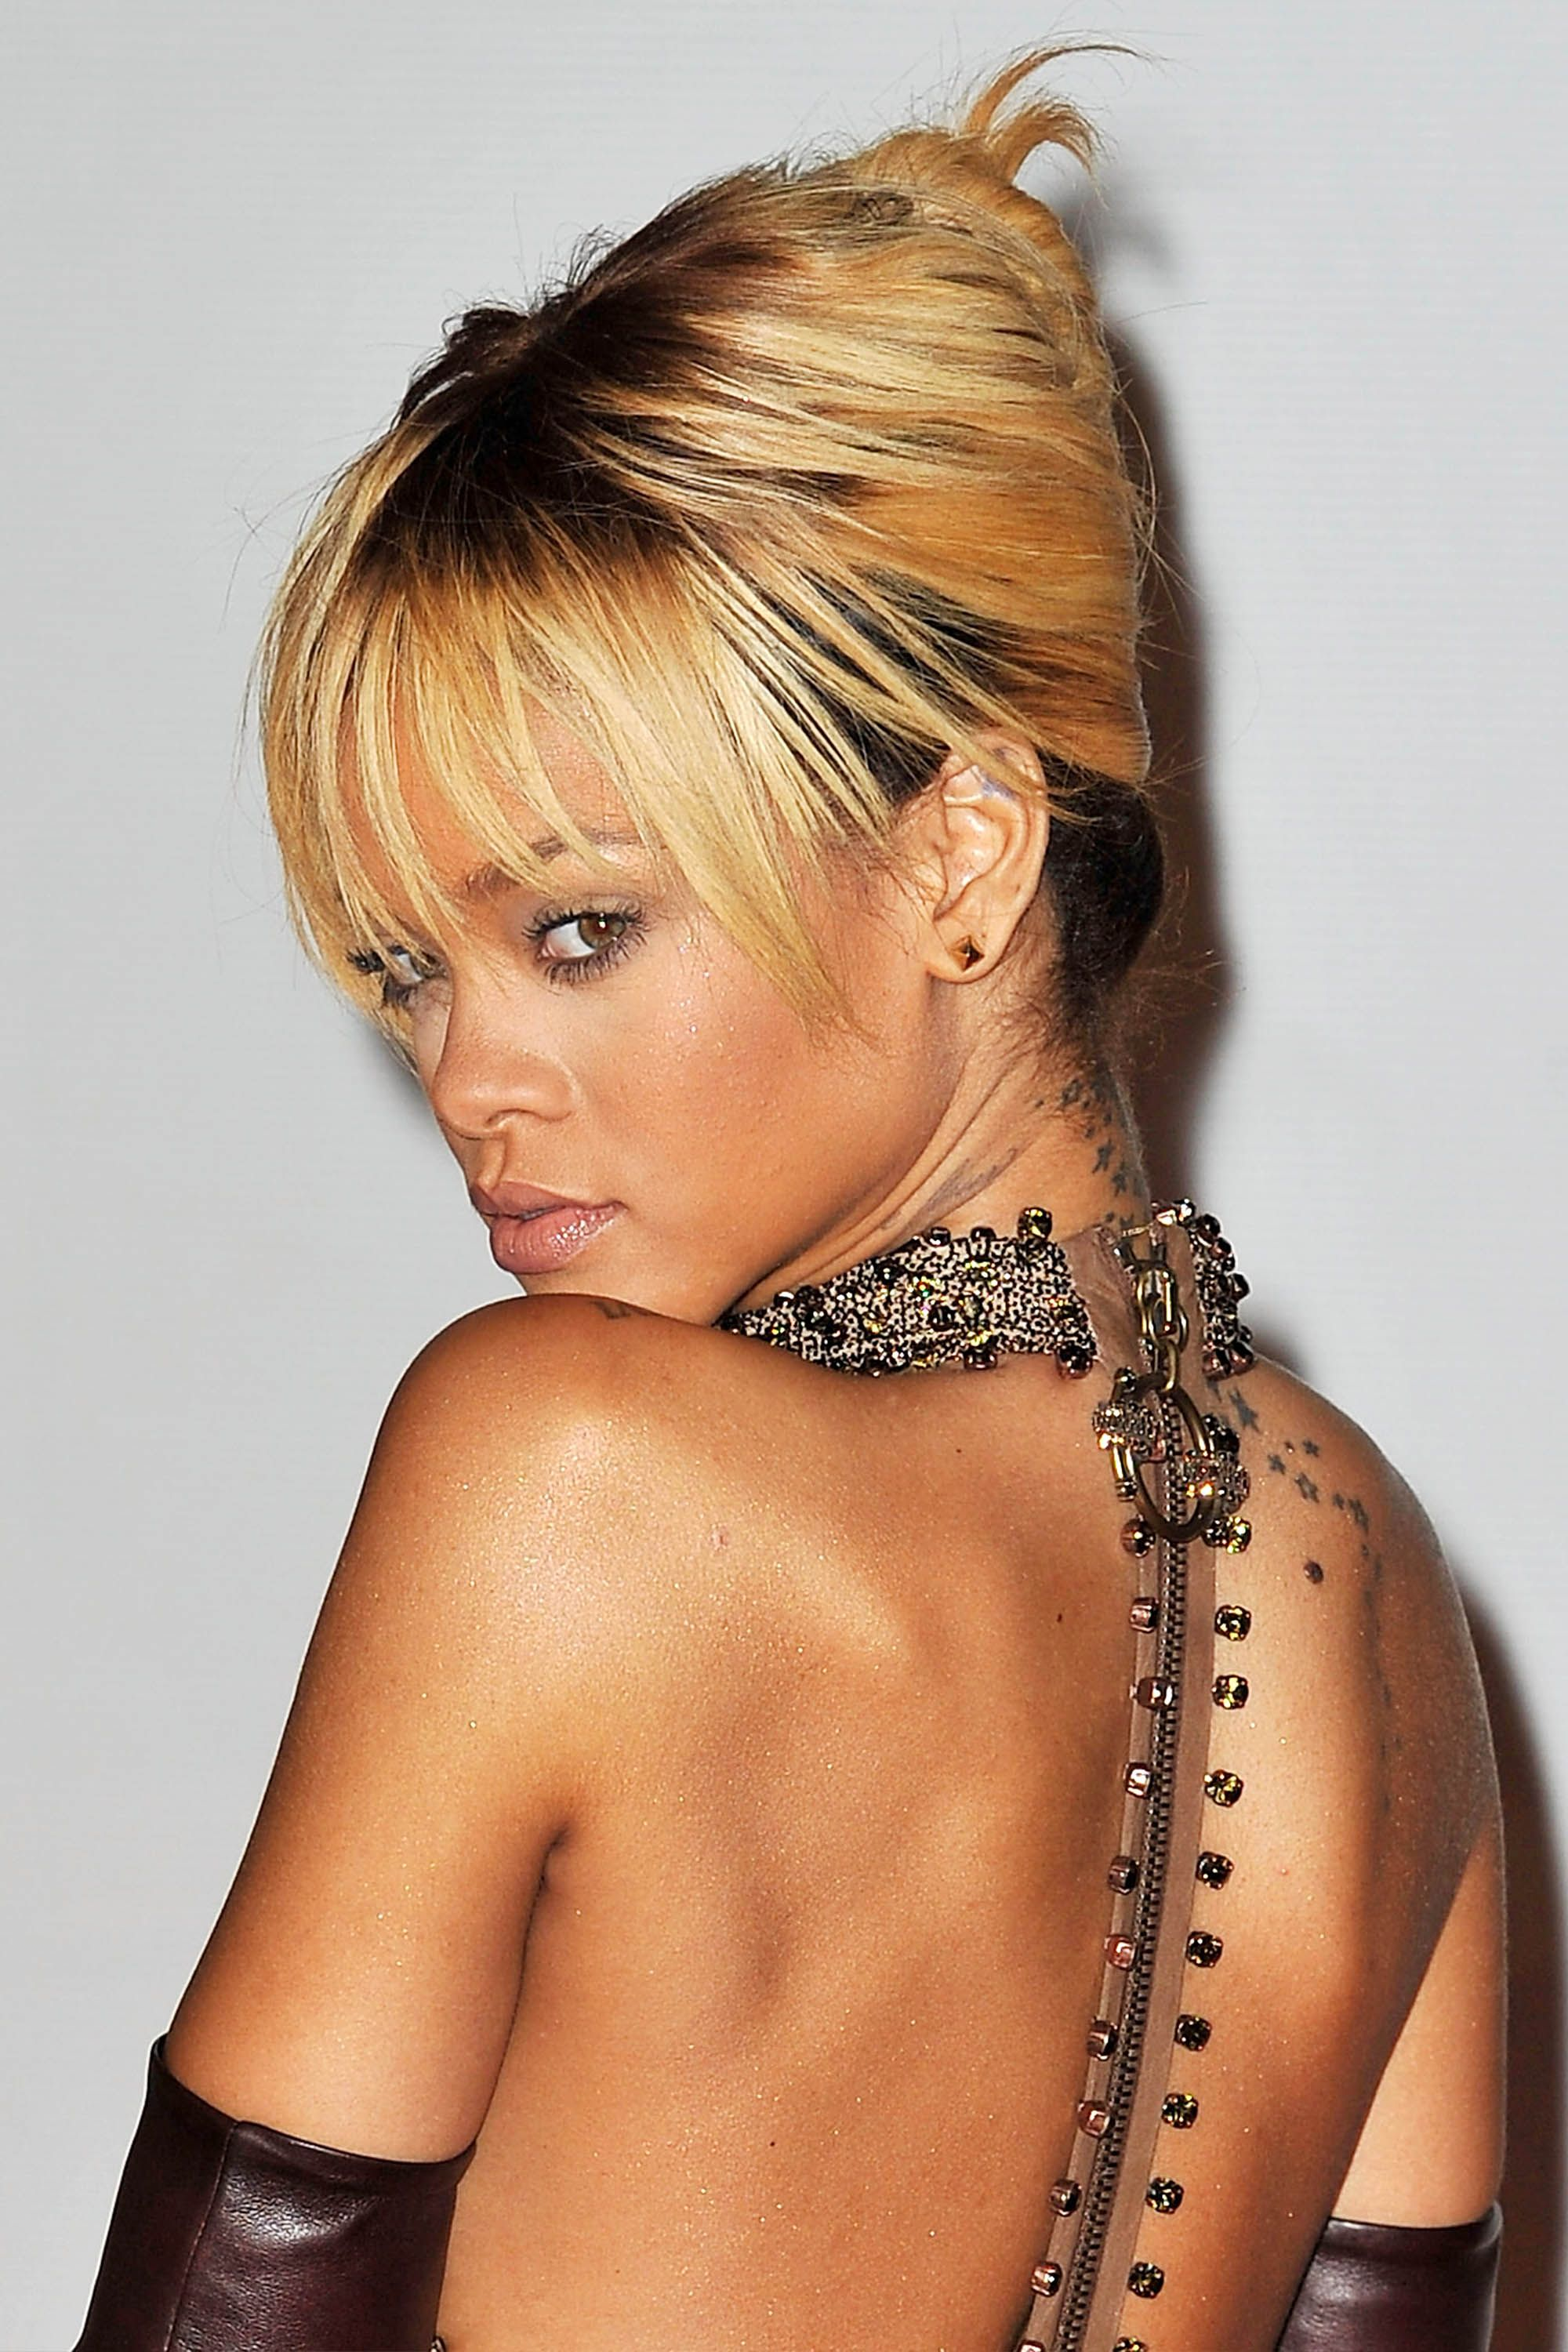 50 Best Rihanna Hairstyles Our Favorite Rihanna Hair Looks Of All Time